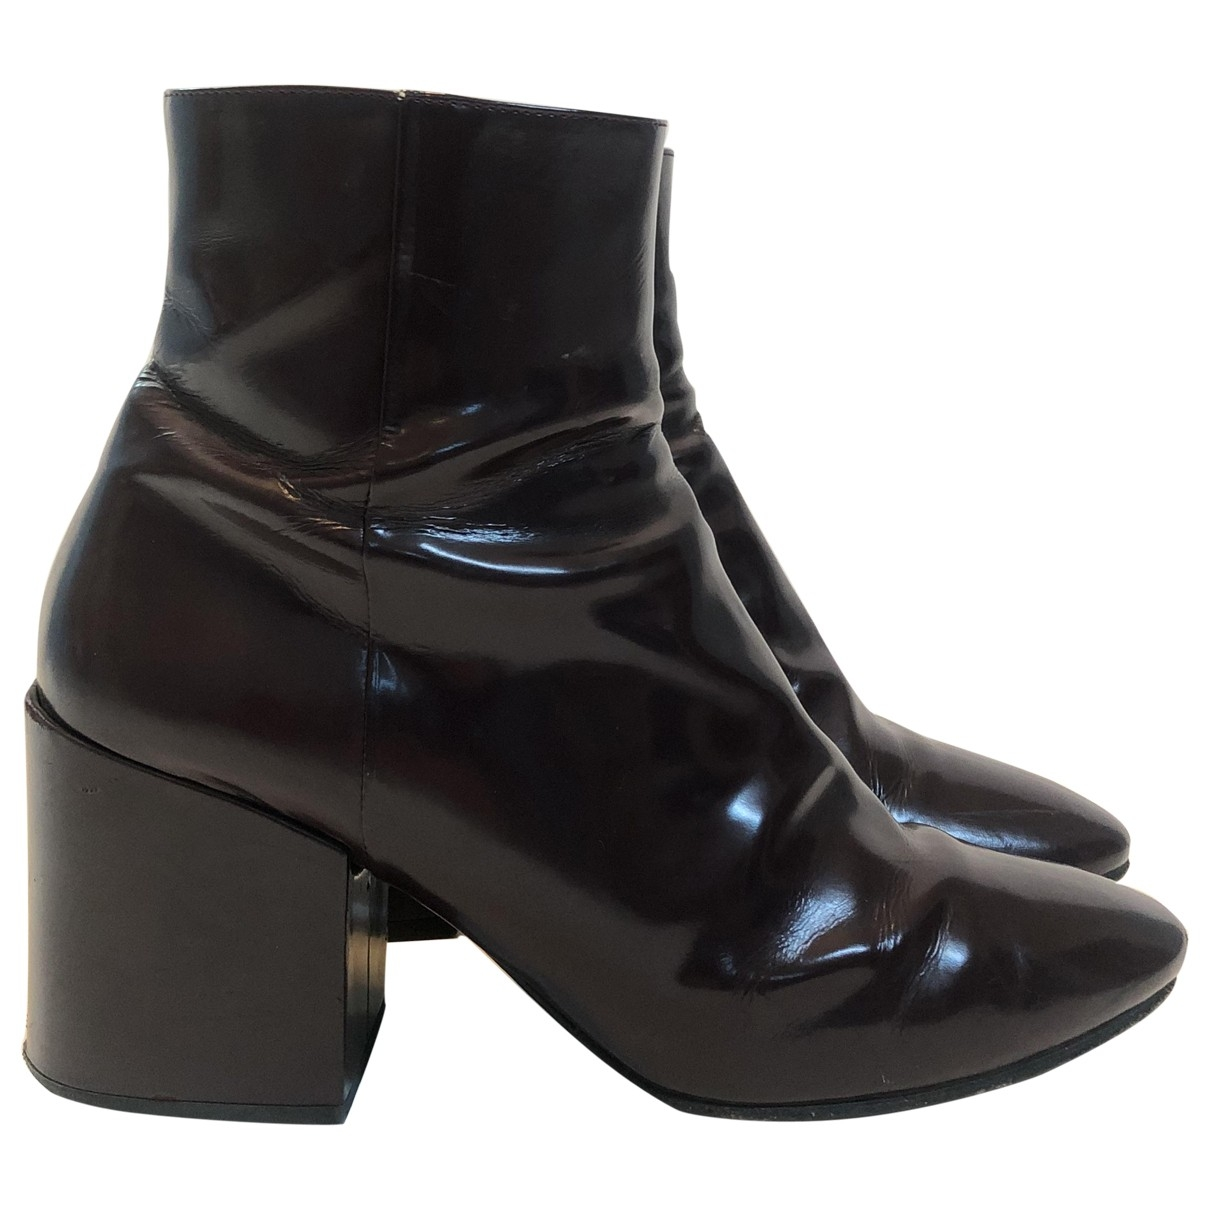 Dries Van Noten \N Burgundy Patent leather Ankle boots for Women 40 EU